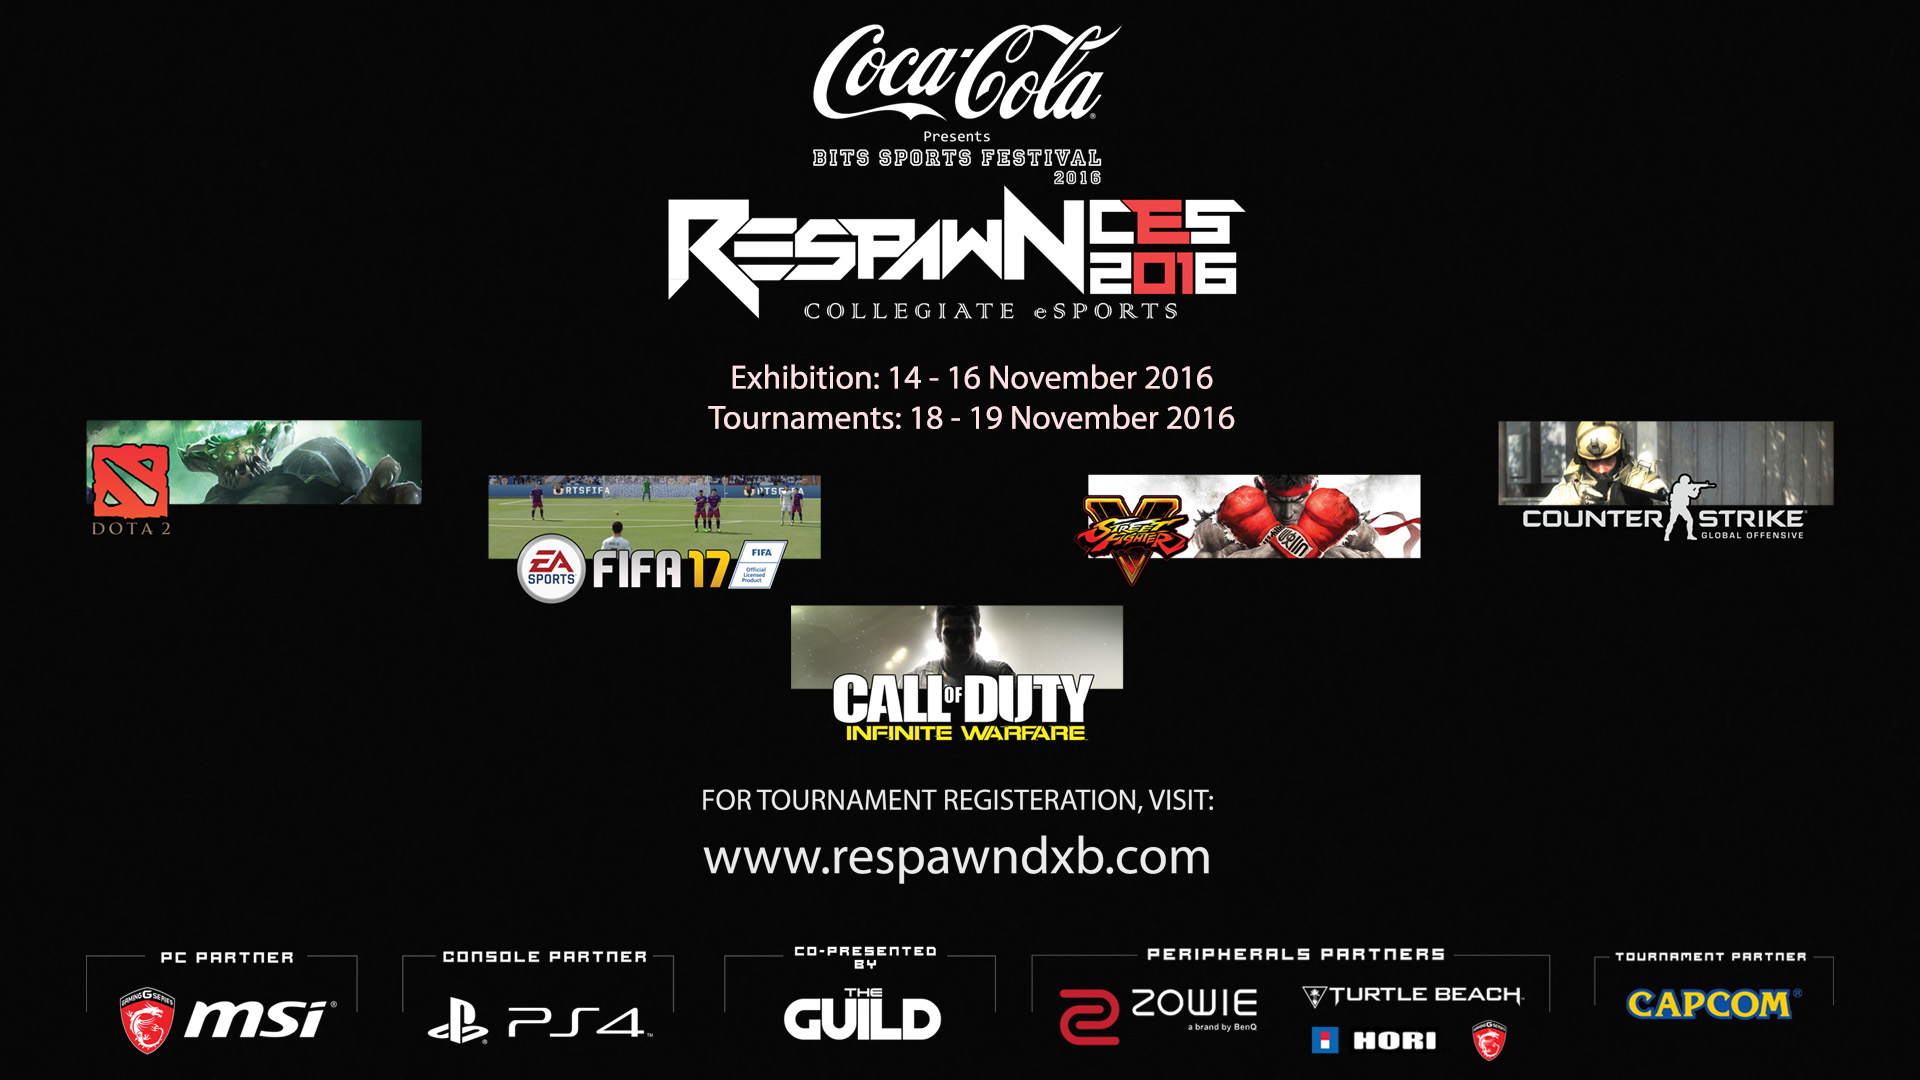 Photo of Respawn CES 2016 announced bringing collegiate eSports to the largest University Sports Festival in the region